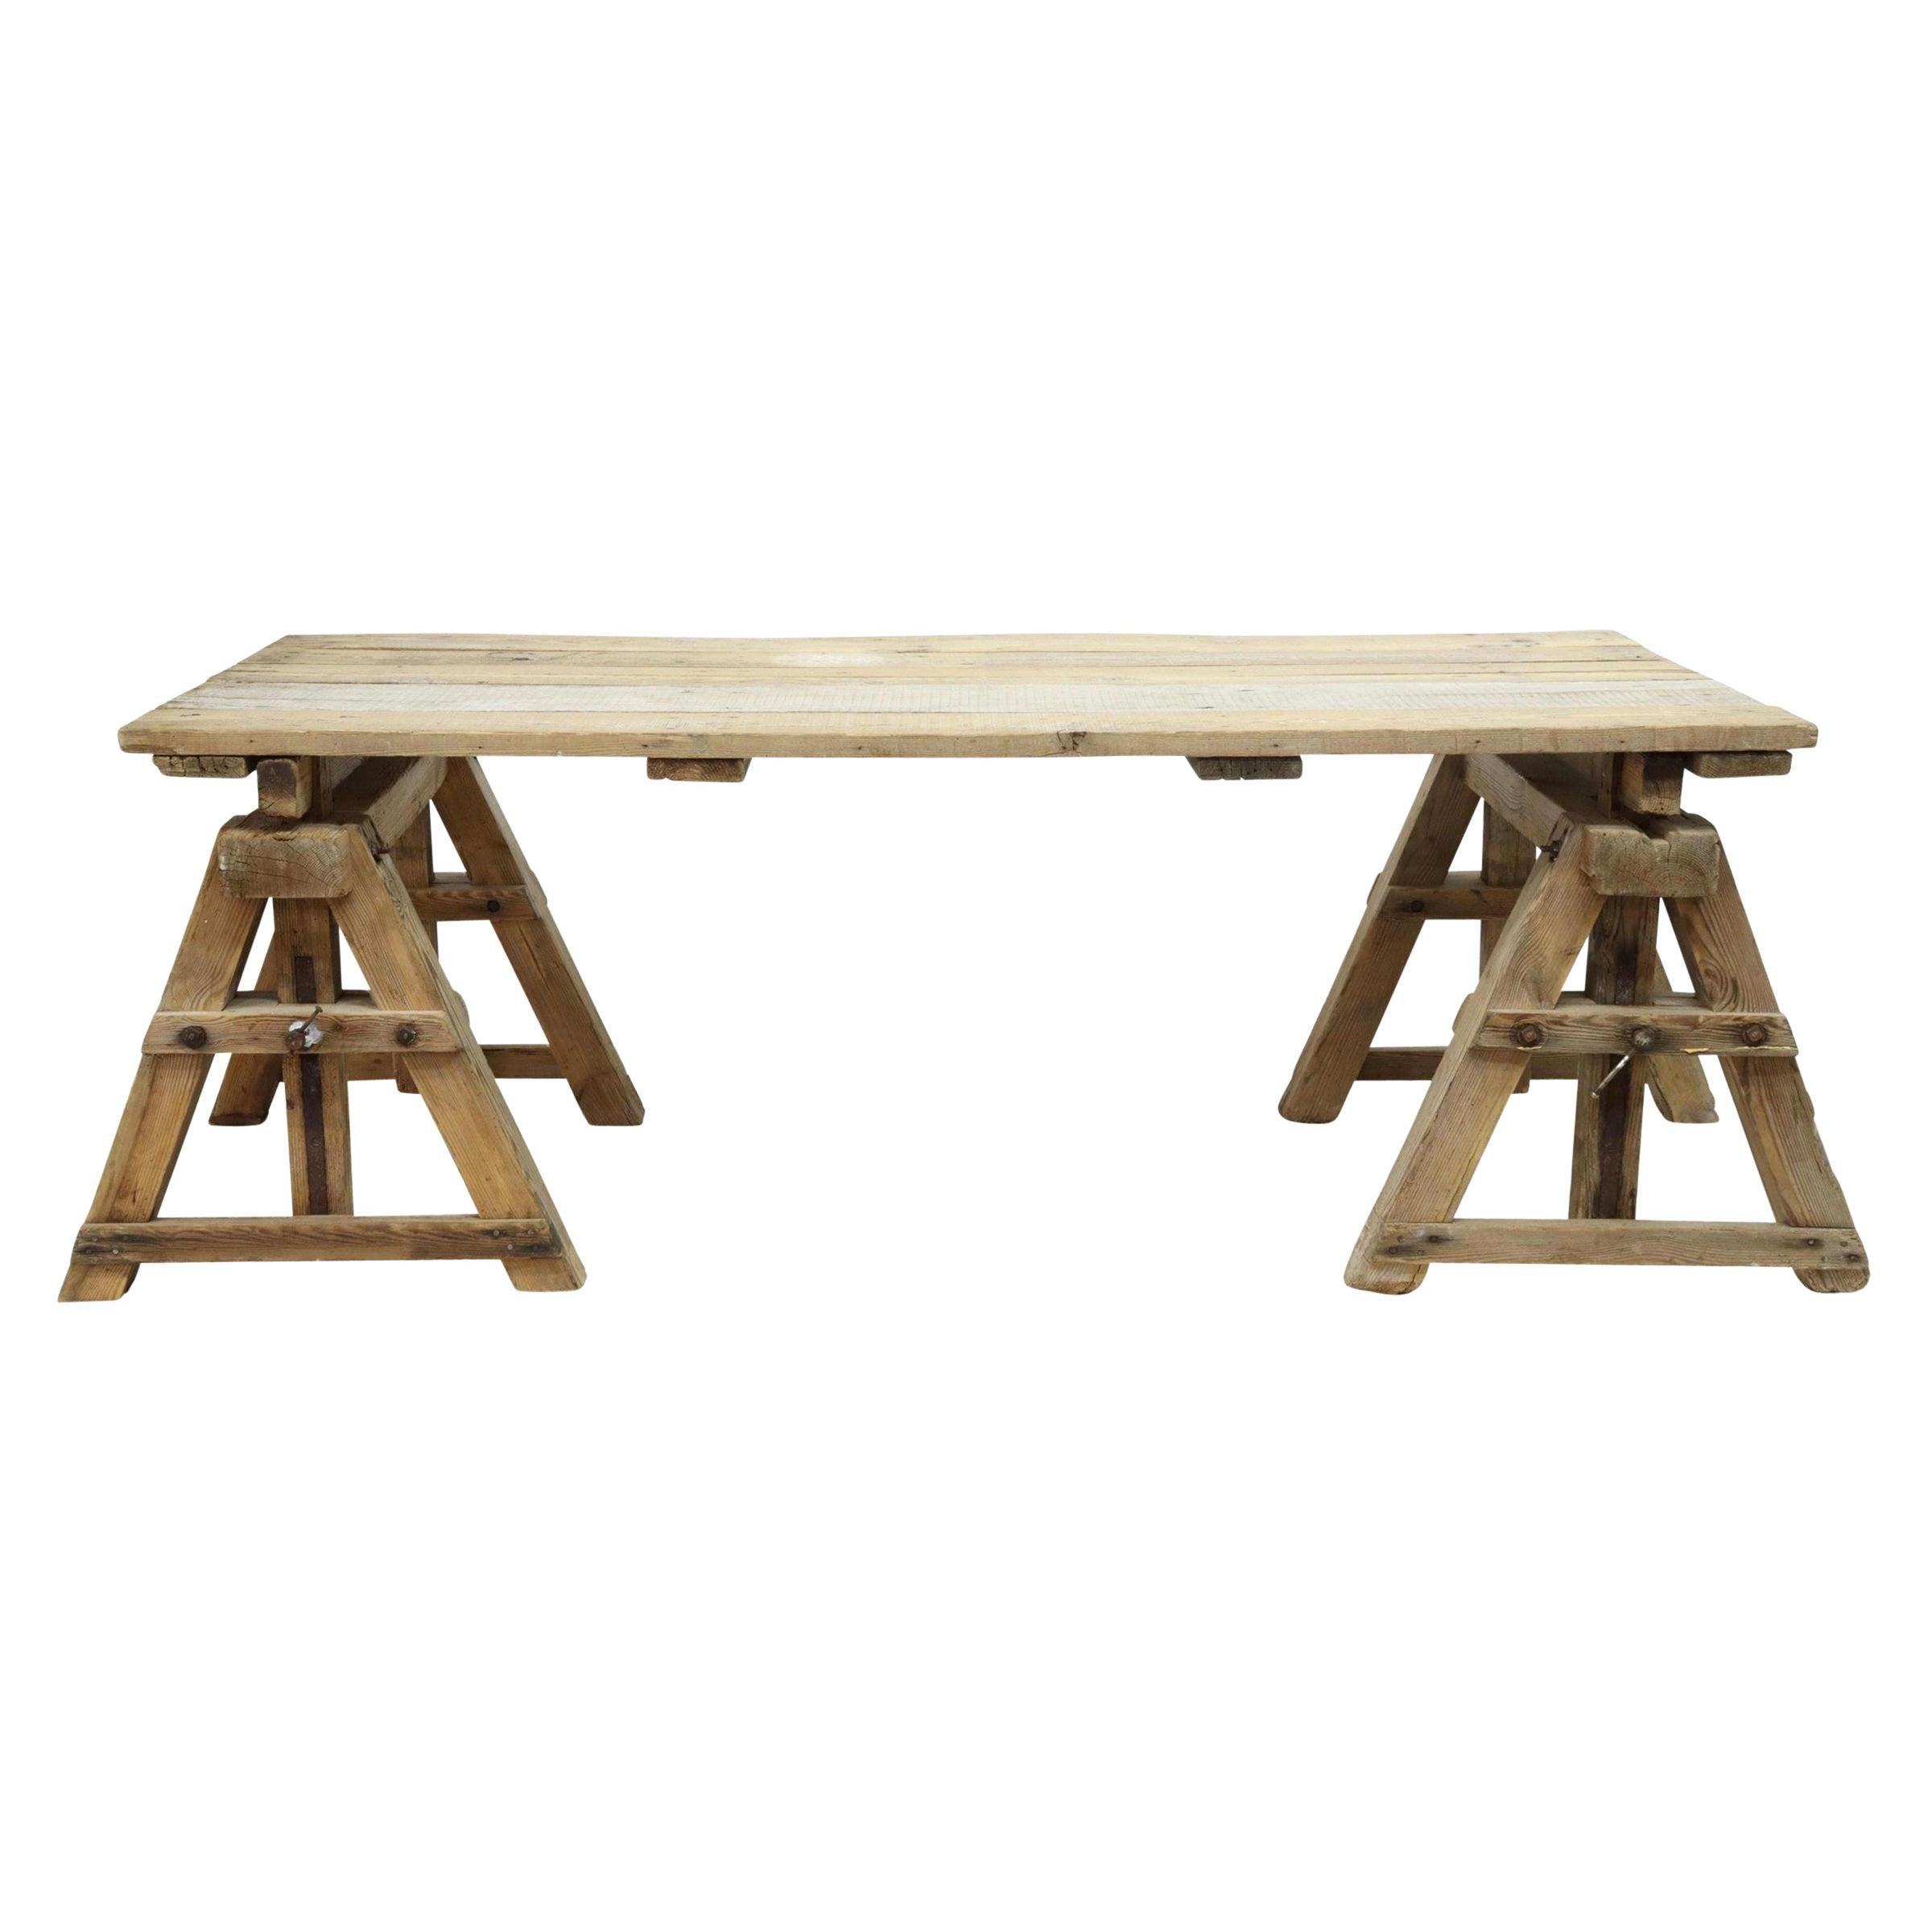 Early 20th Century American Adjustable Work Table